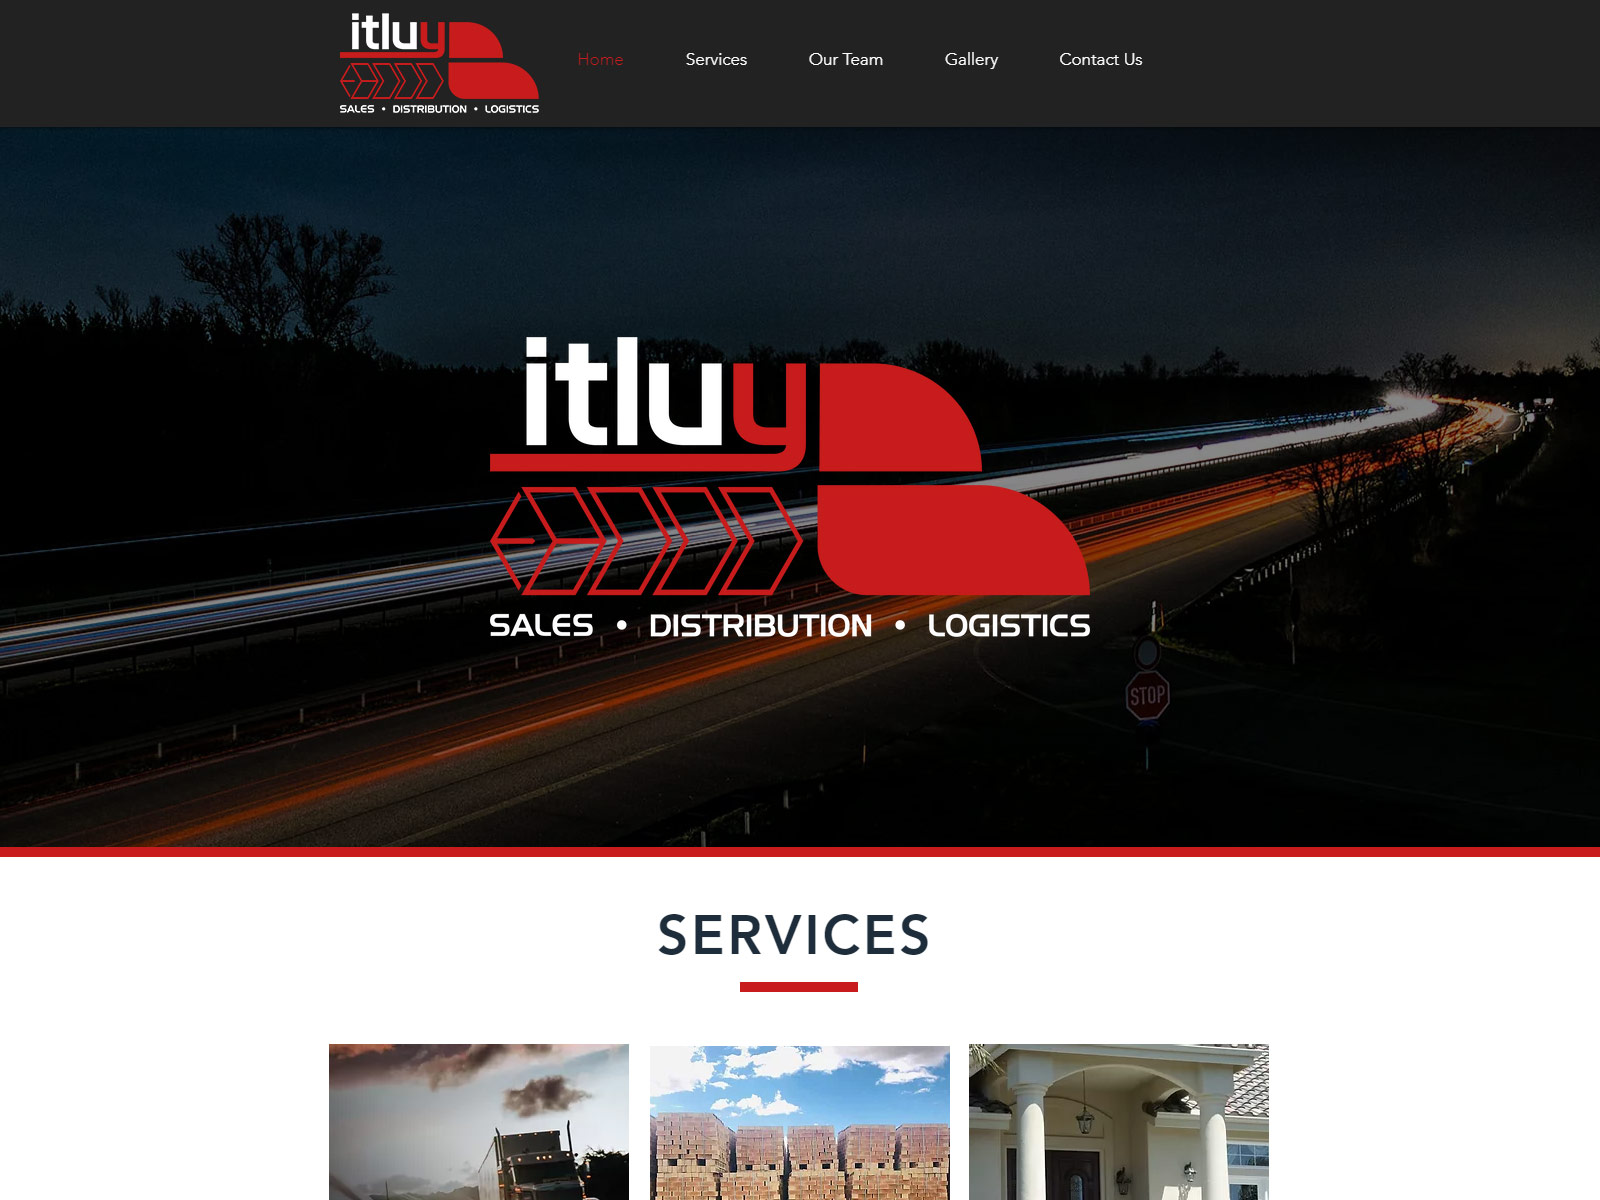 ITLUY Marketing – Website redesign